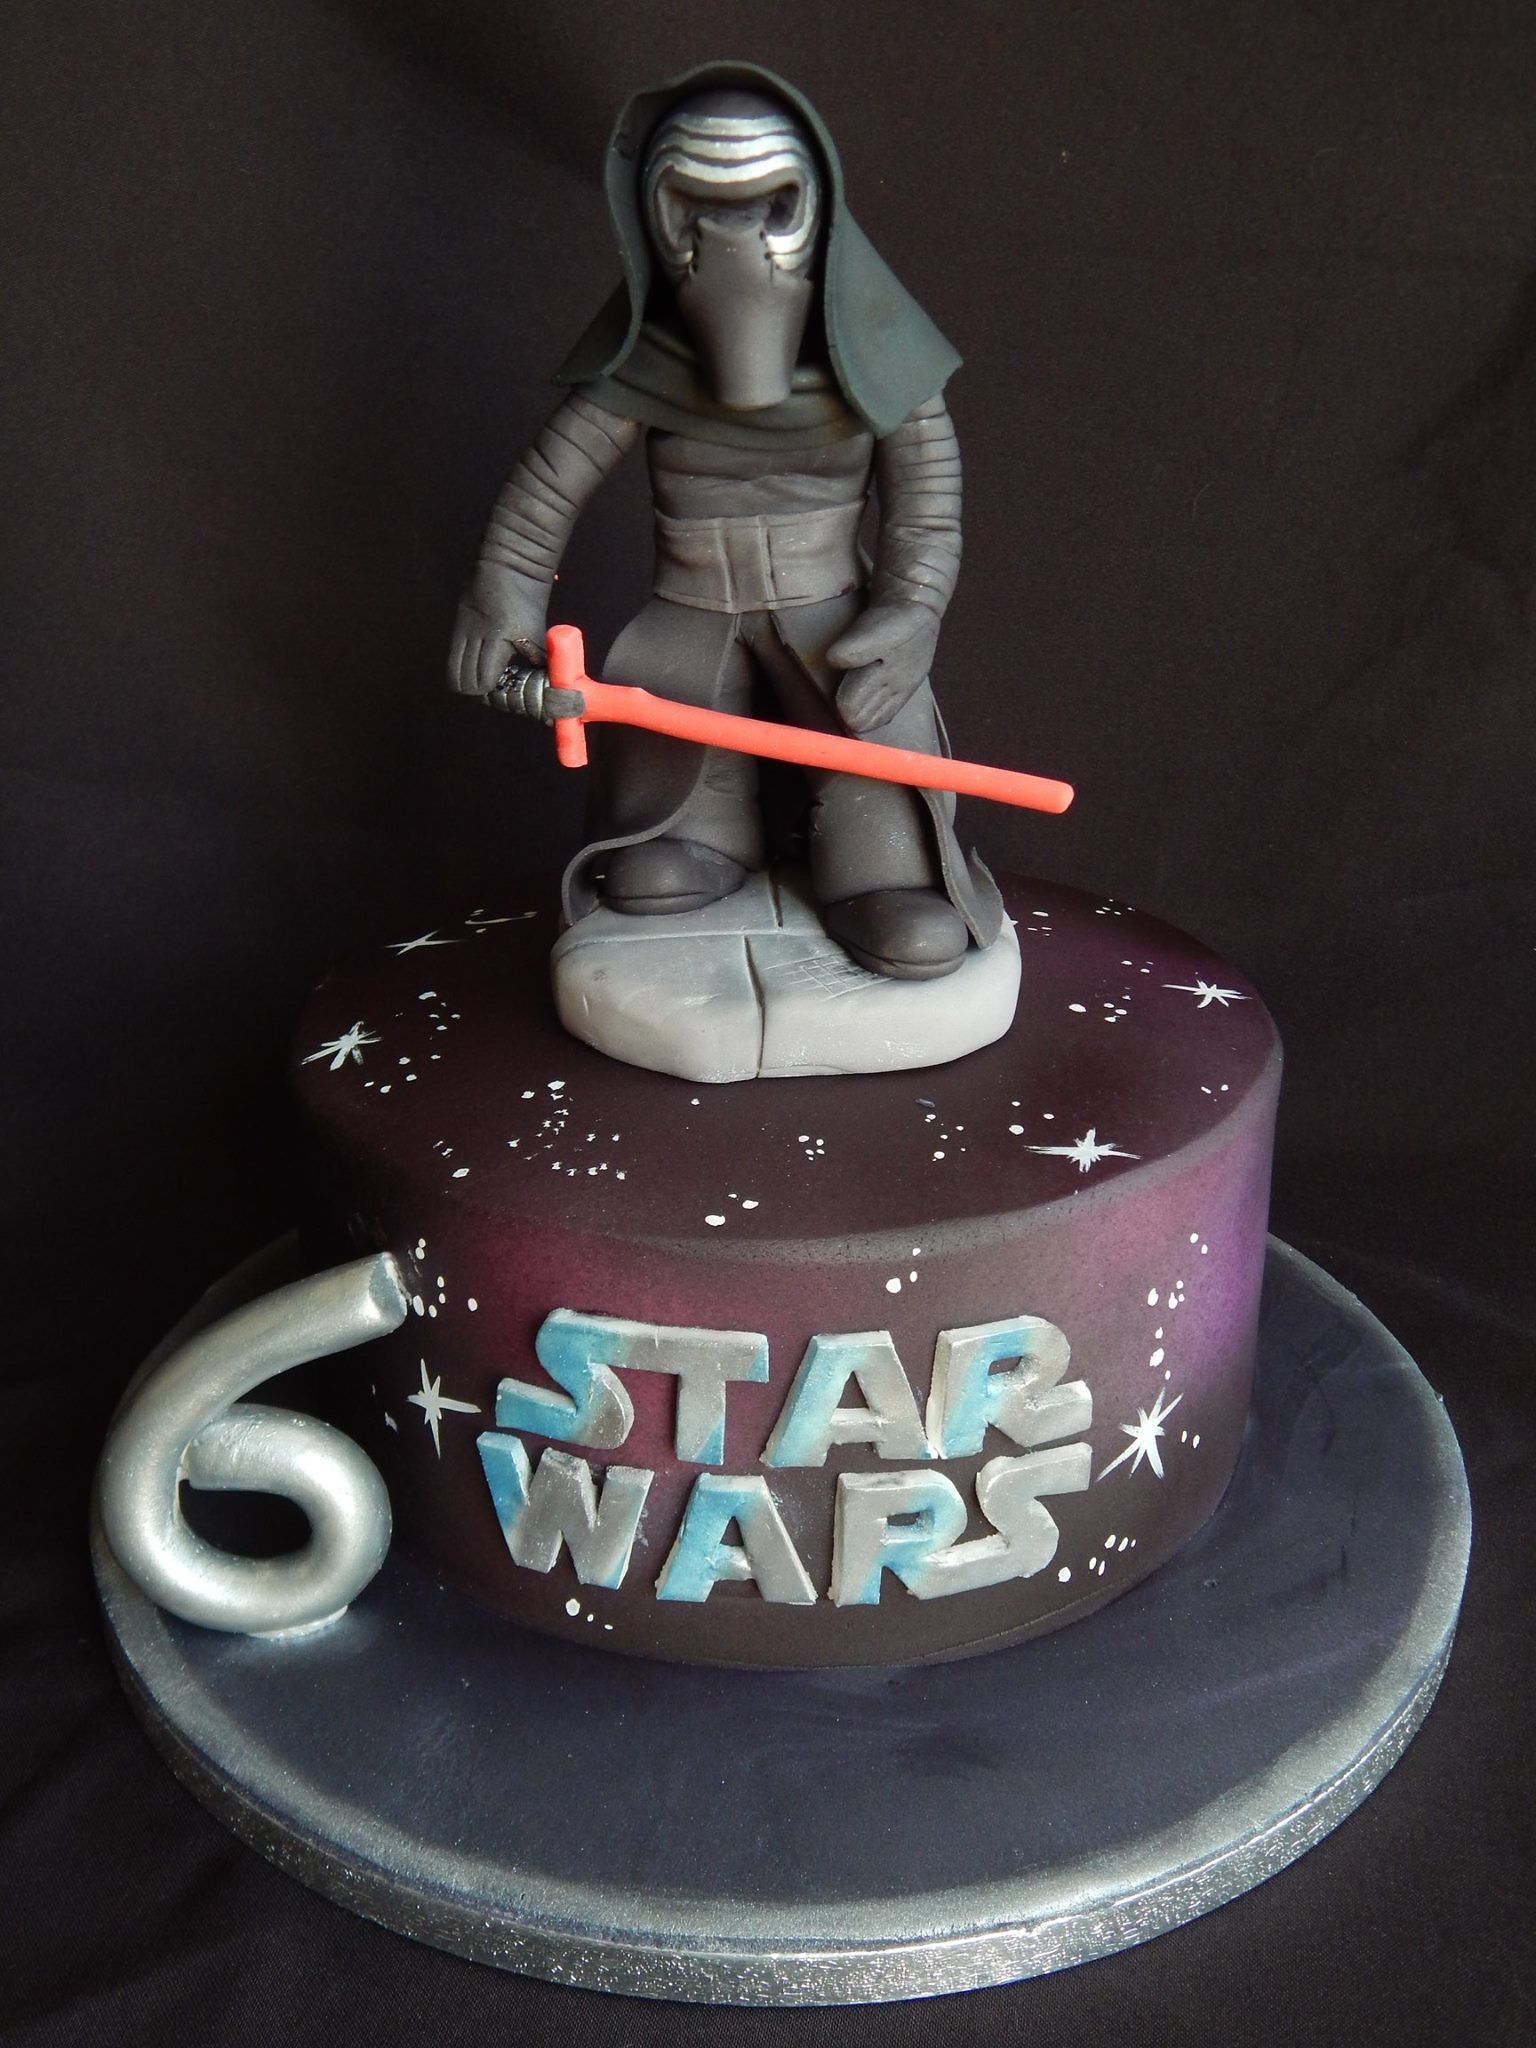 kylo ren star wars cake quite a contrast from elizabeth miles cake design star wars. Black Bedroom Furniture Sets. Home Design Ideas